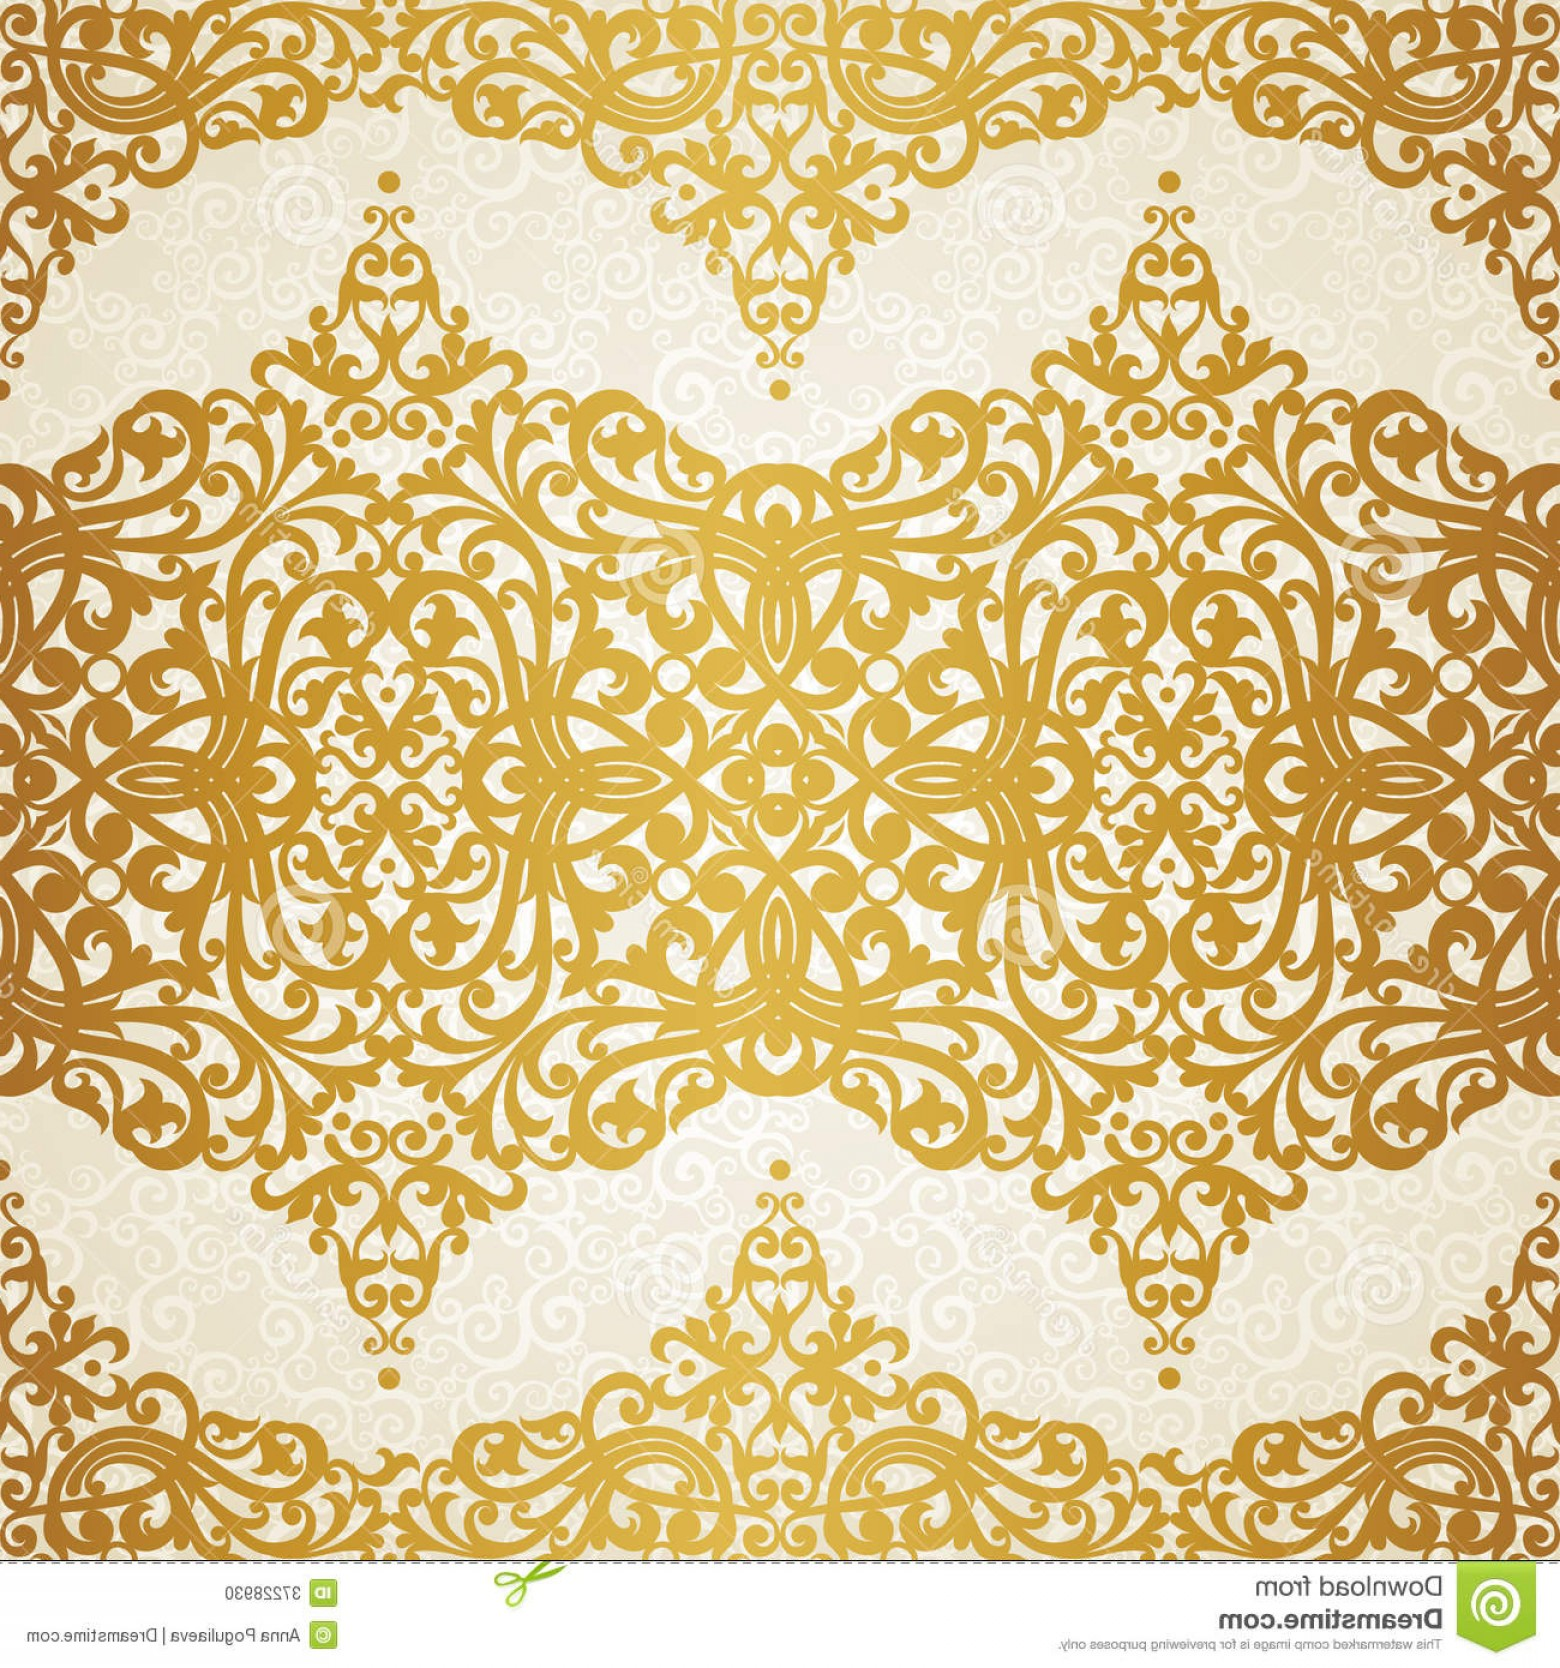 Victorian Motif Vector: Stock Photo Vector Seamless Pattern Swirls Floral Motifs Retro Style Golden Victorian Background Can Be Used Wallpaper Image